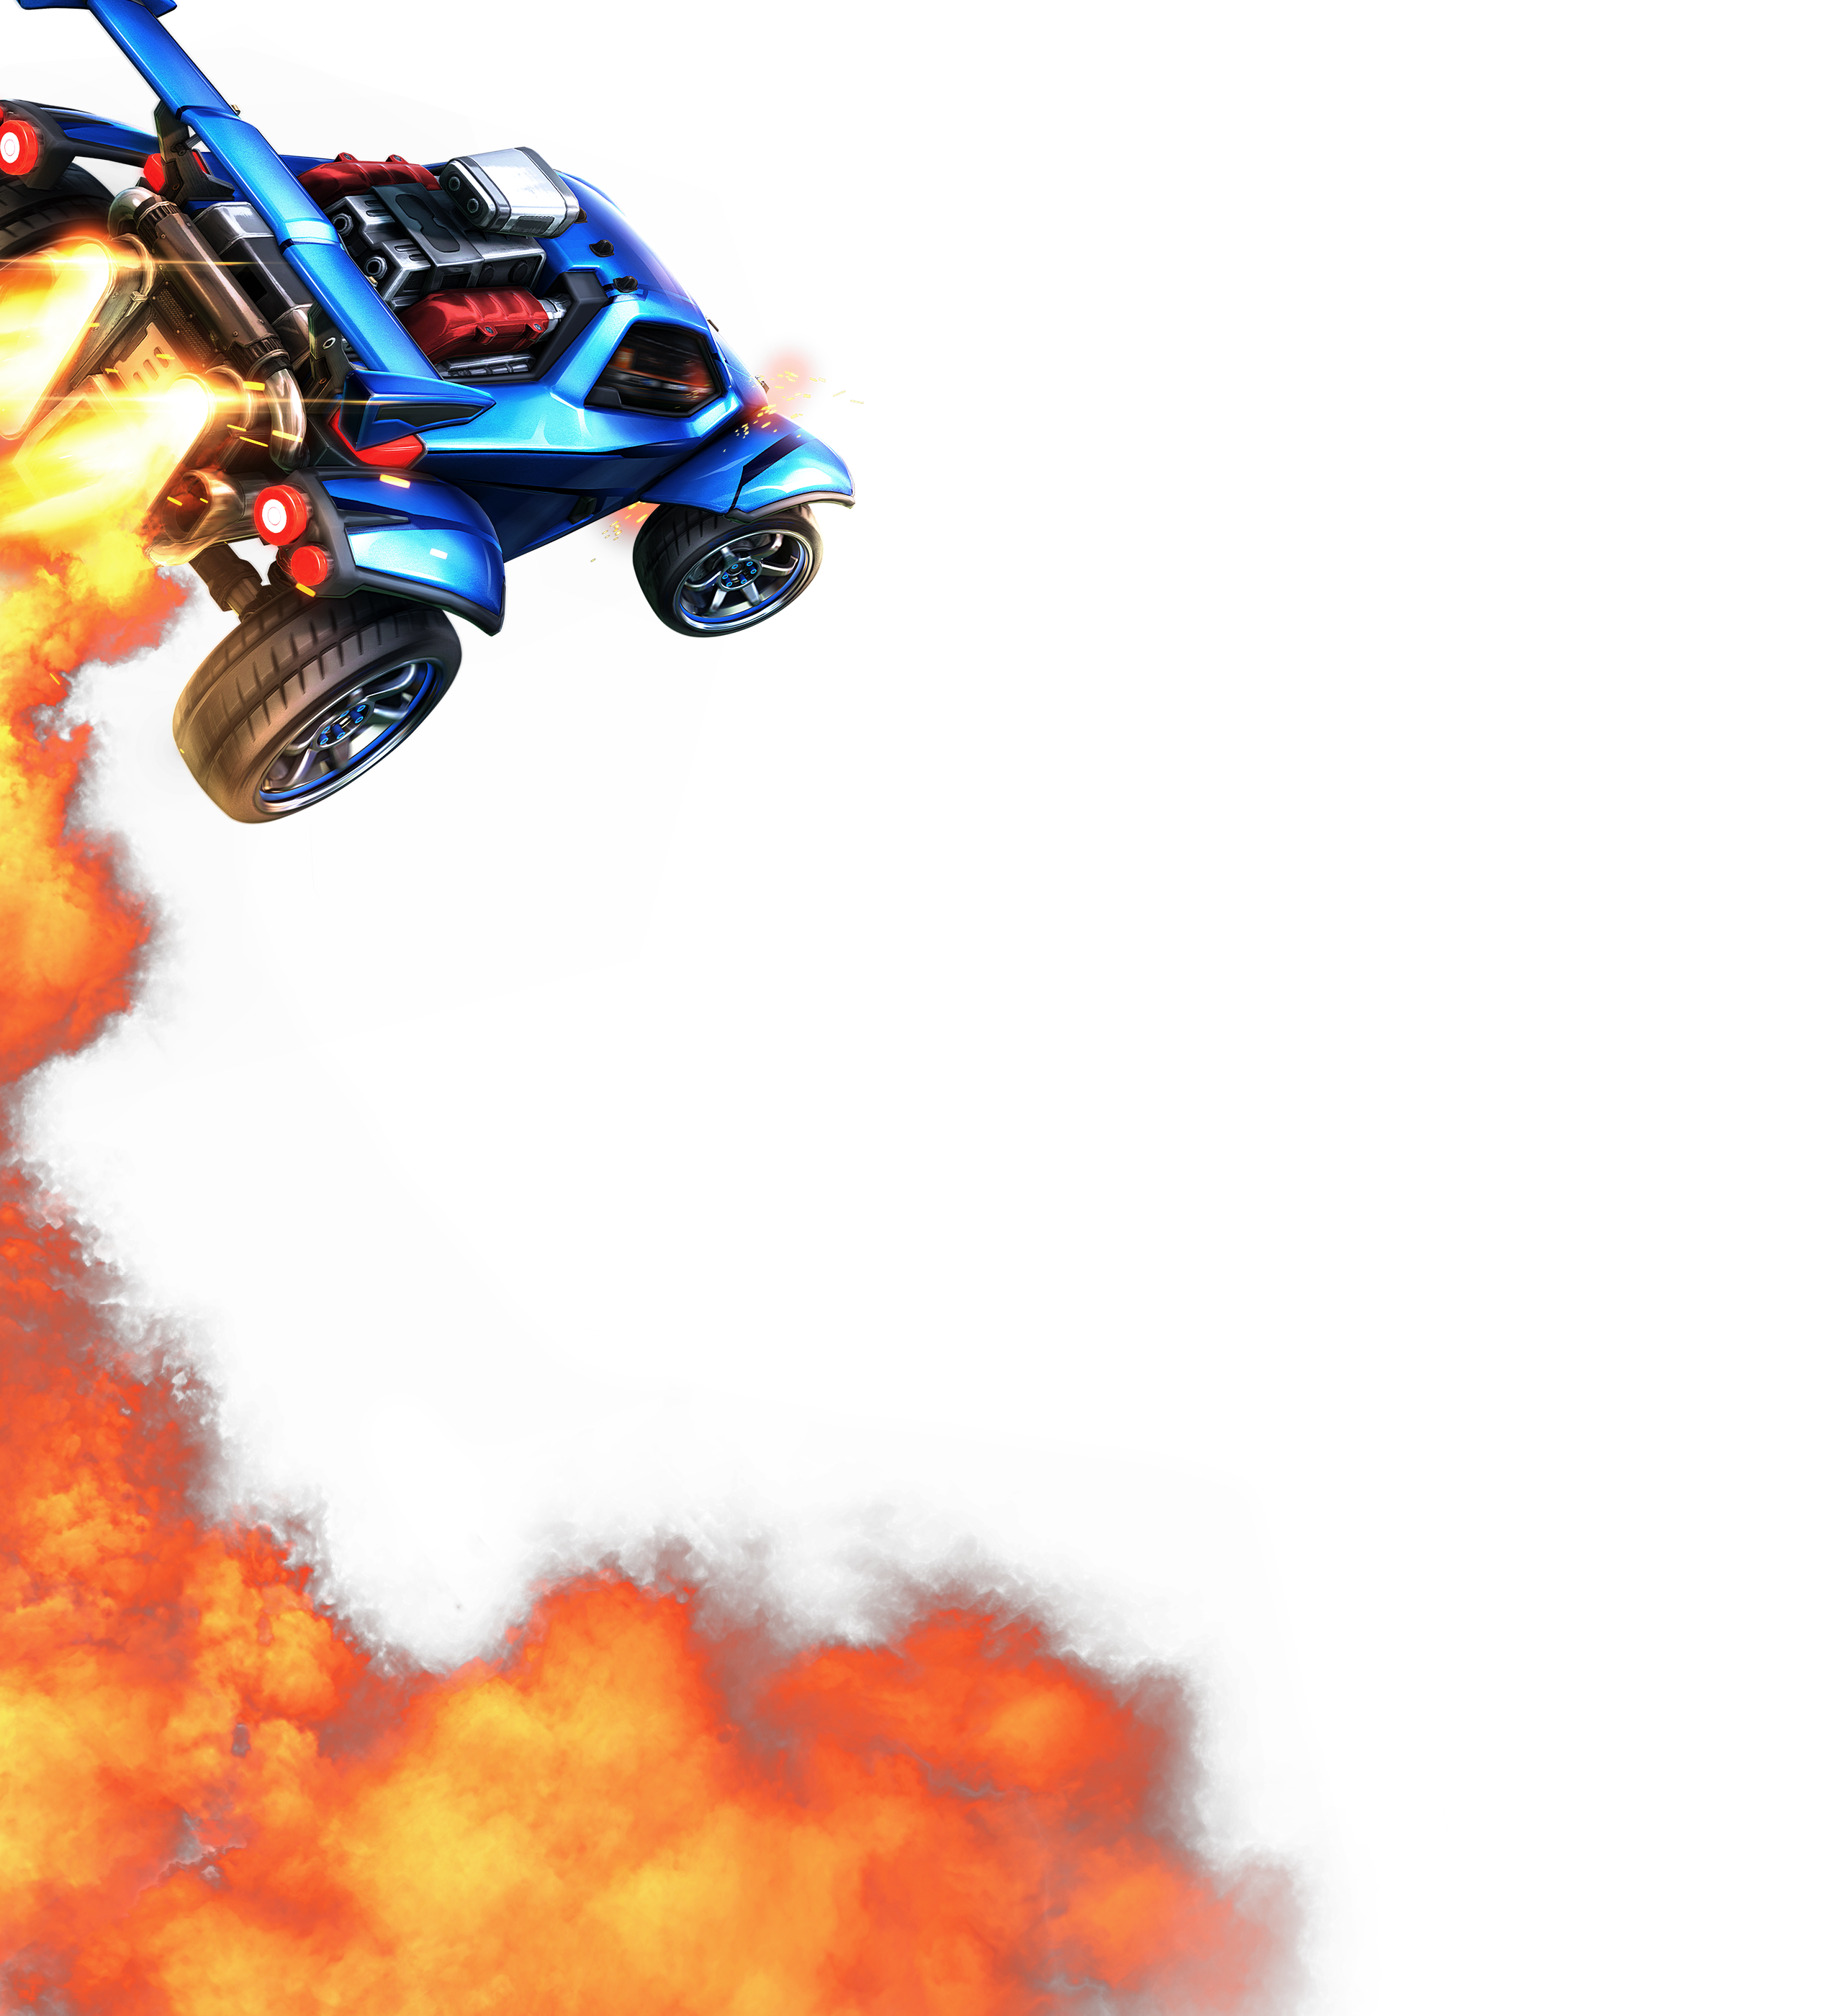 Rocket League Octane Png Transparent : More specifically ...